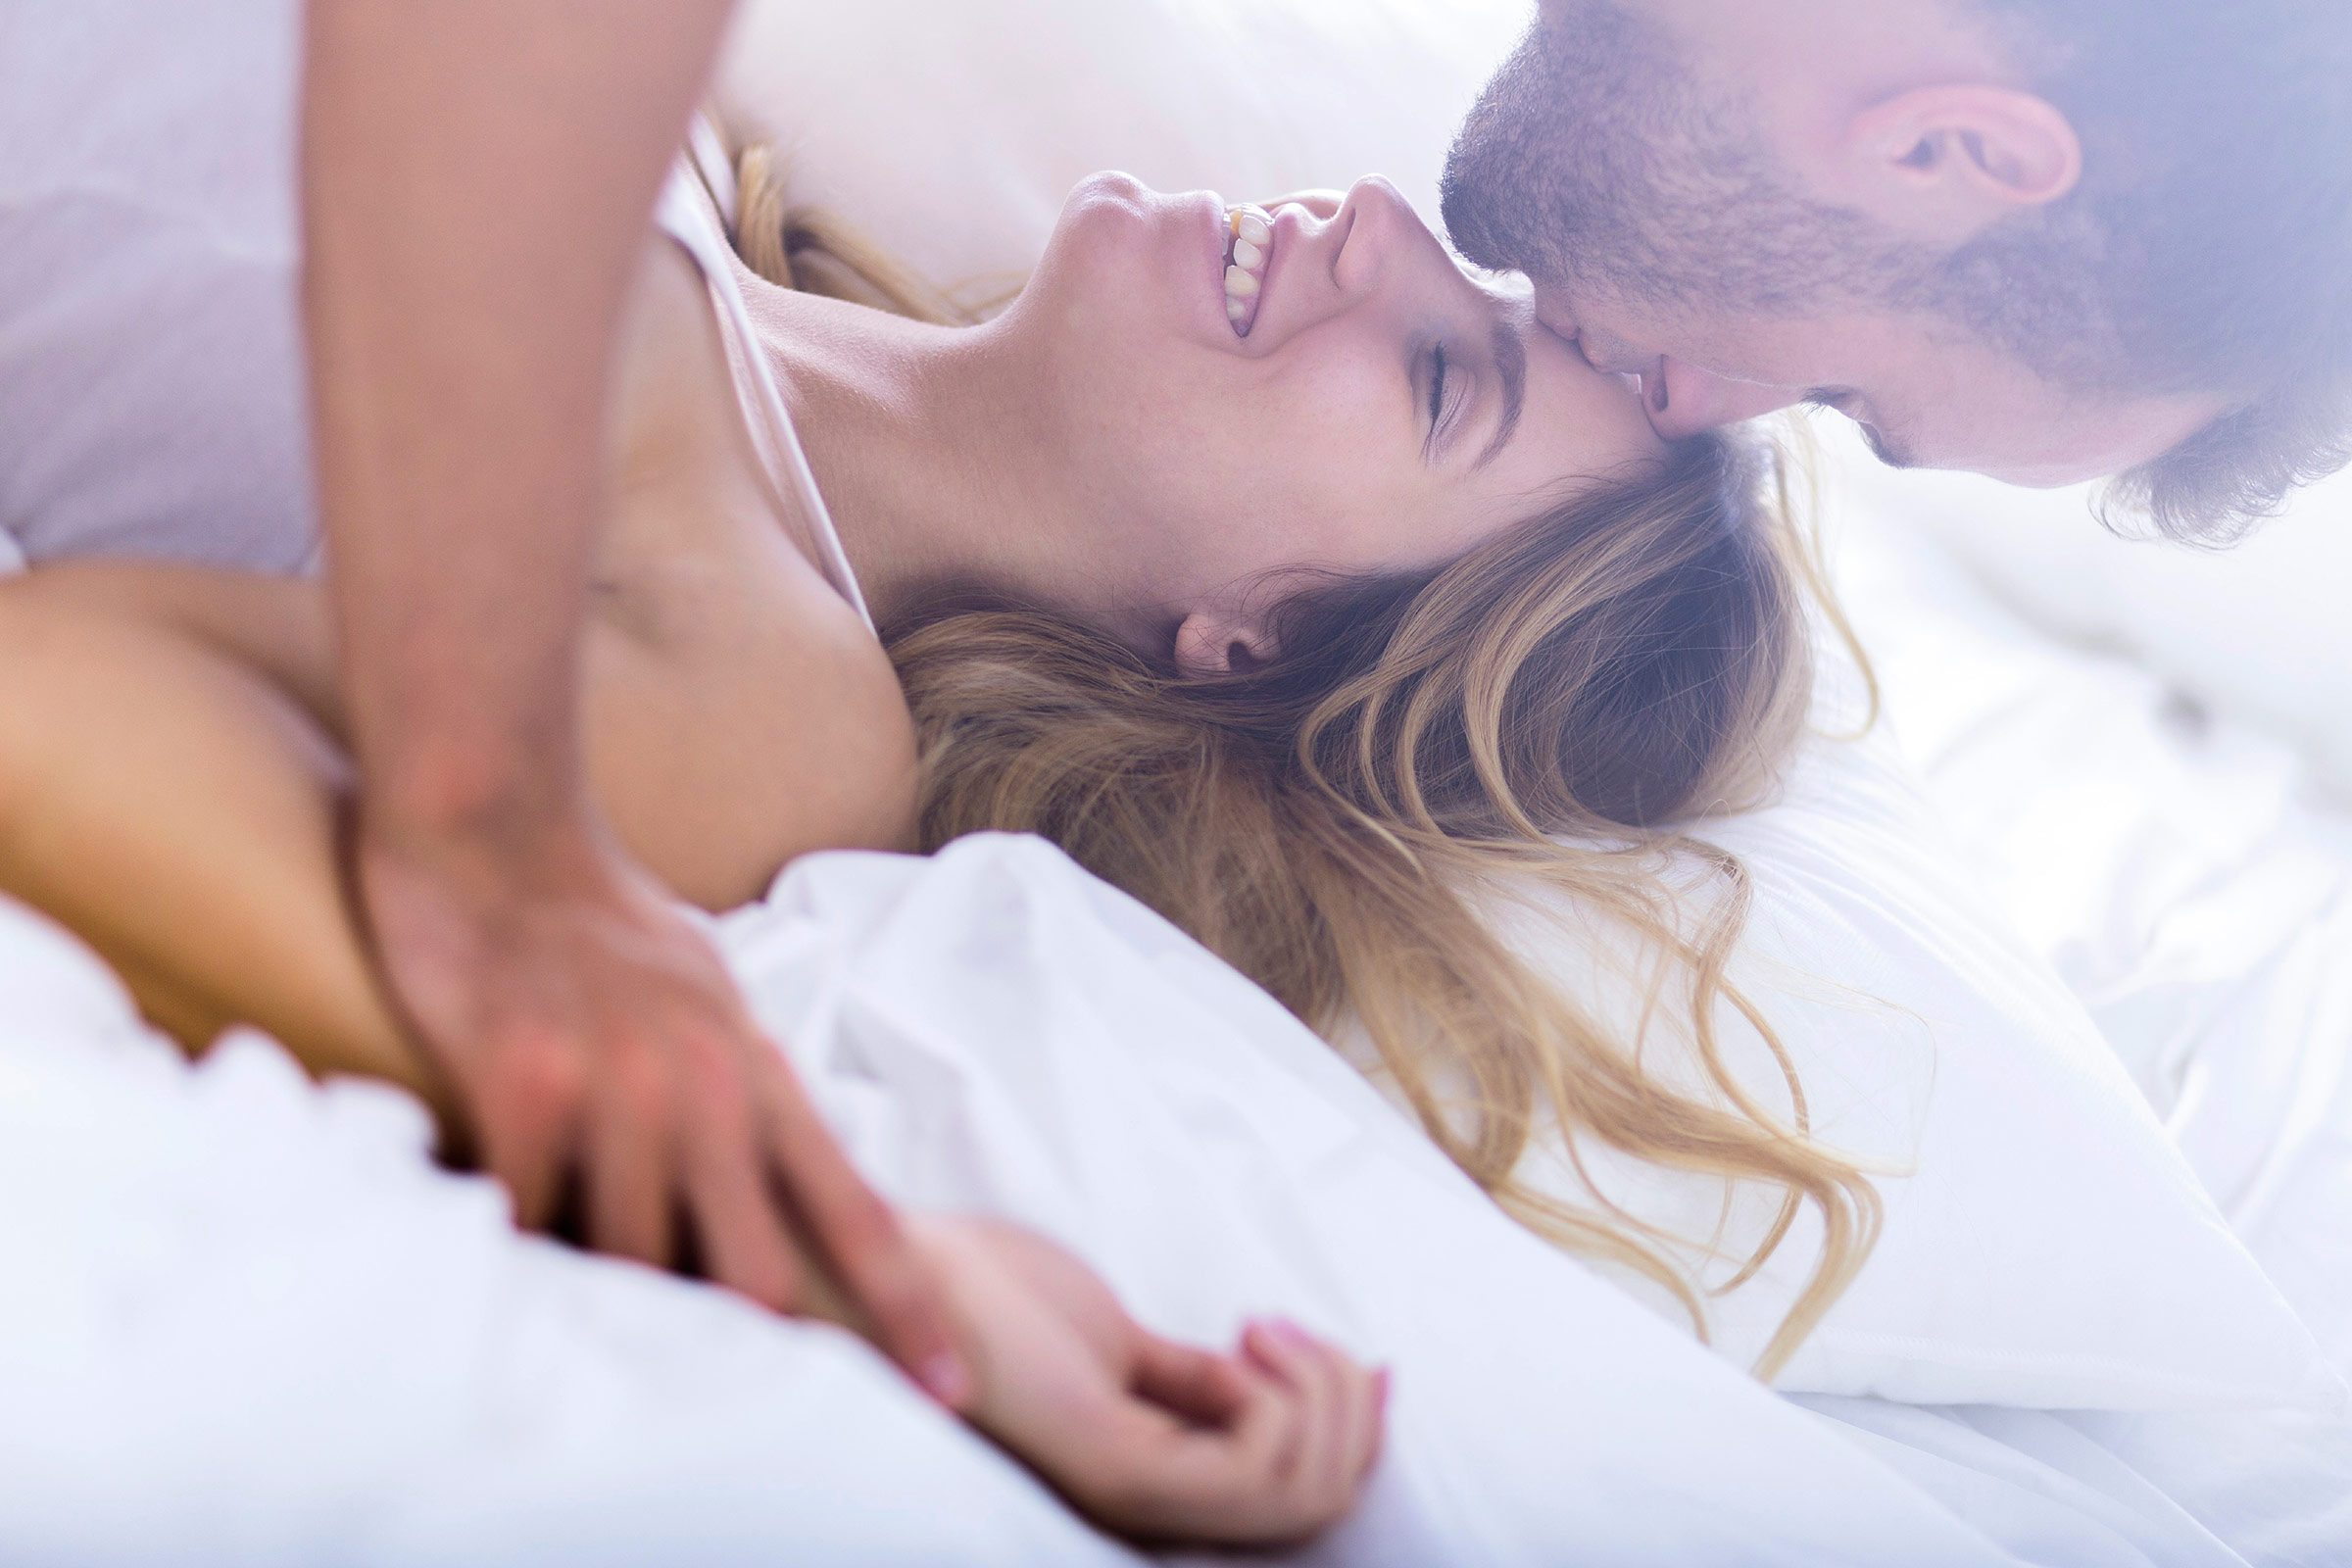 Most romantic bedroom kisses - Remove The Pressure To Get Right To It